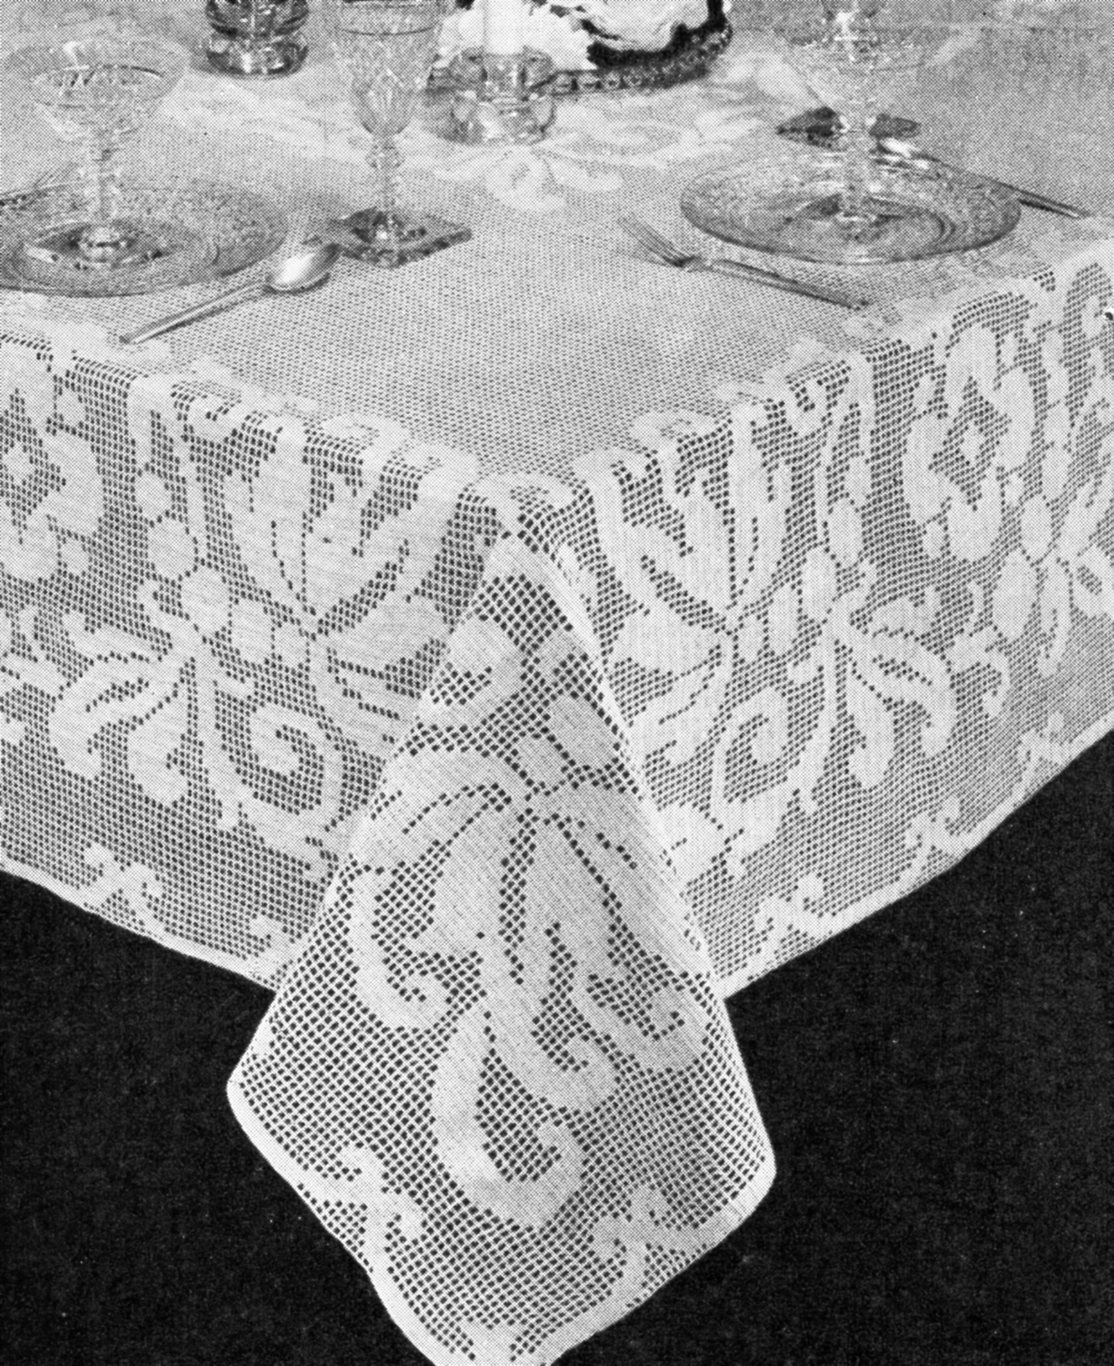 Free filet crochet pattern archives vintage crafts and more banquet tablecloth filet crochet pattern ccuart Gallery